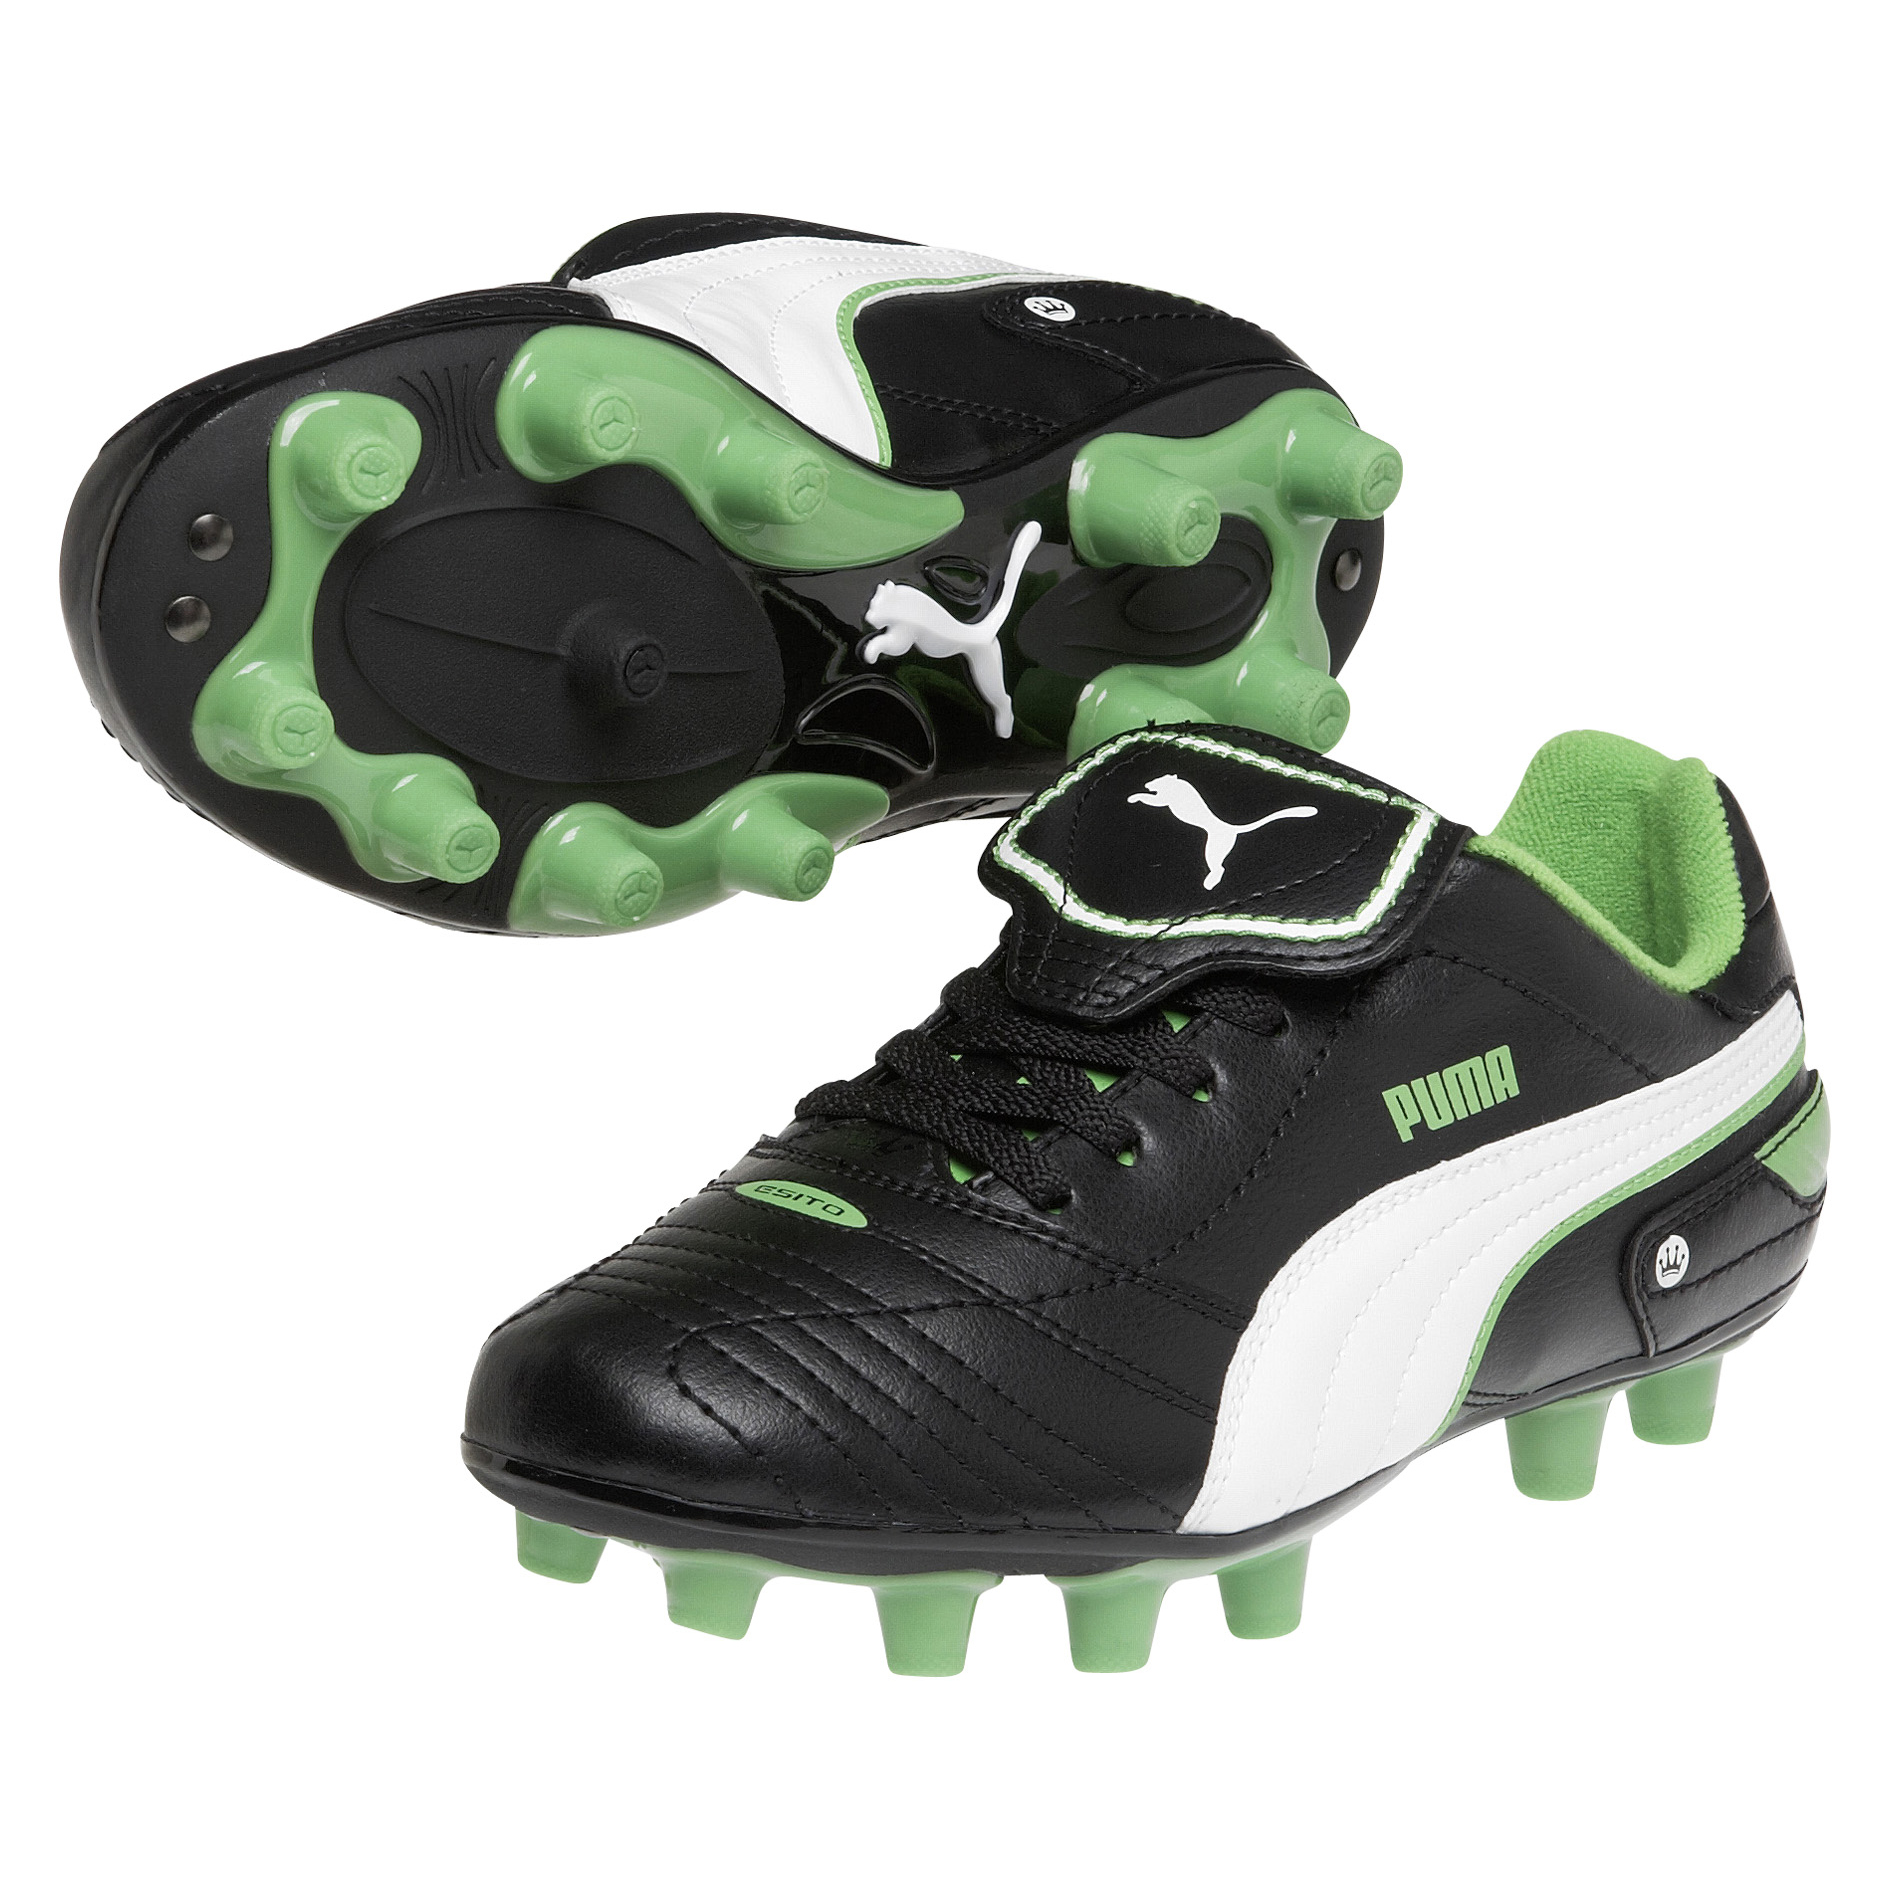 Puma Esito Finale Firm Ground Football Boots - Kids - Black/White/Fluo Green